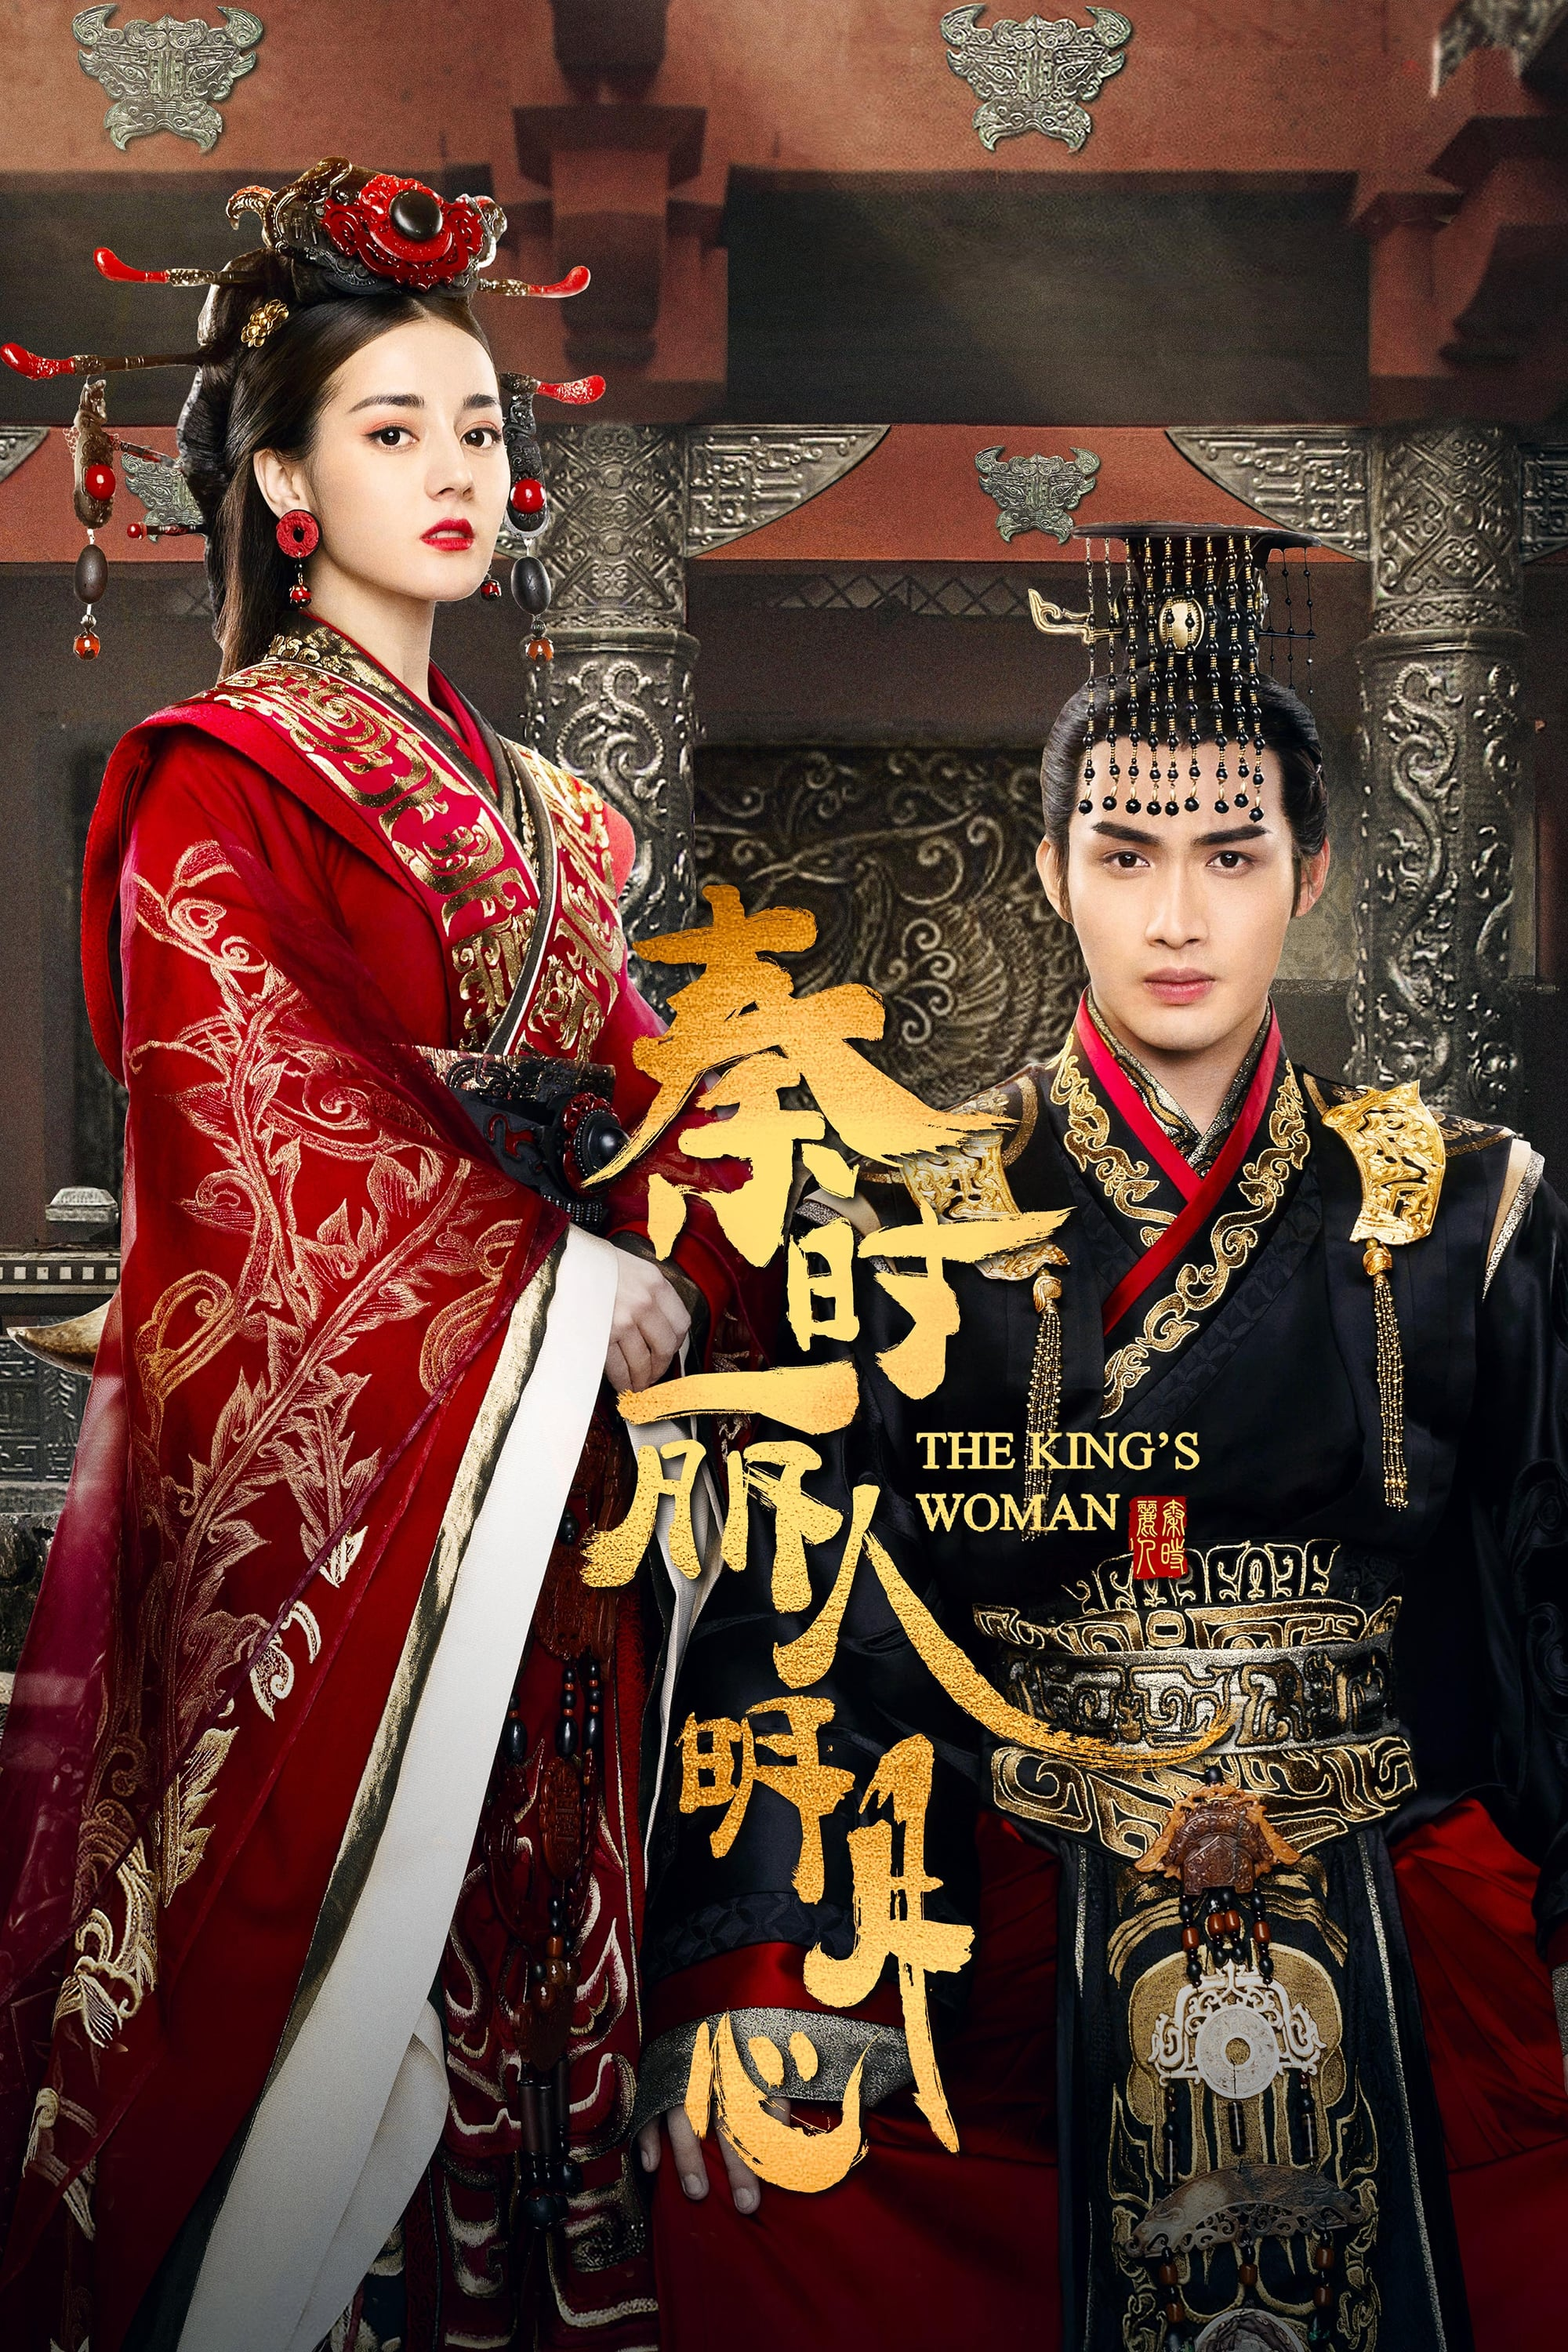 The King's Woman Poster